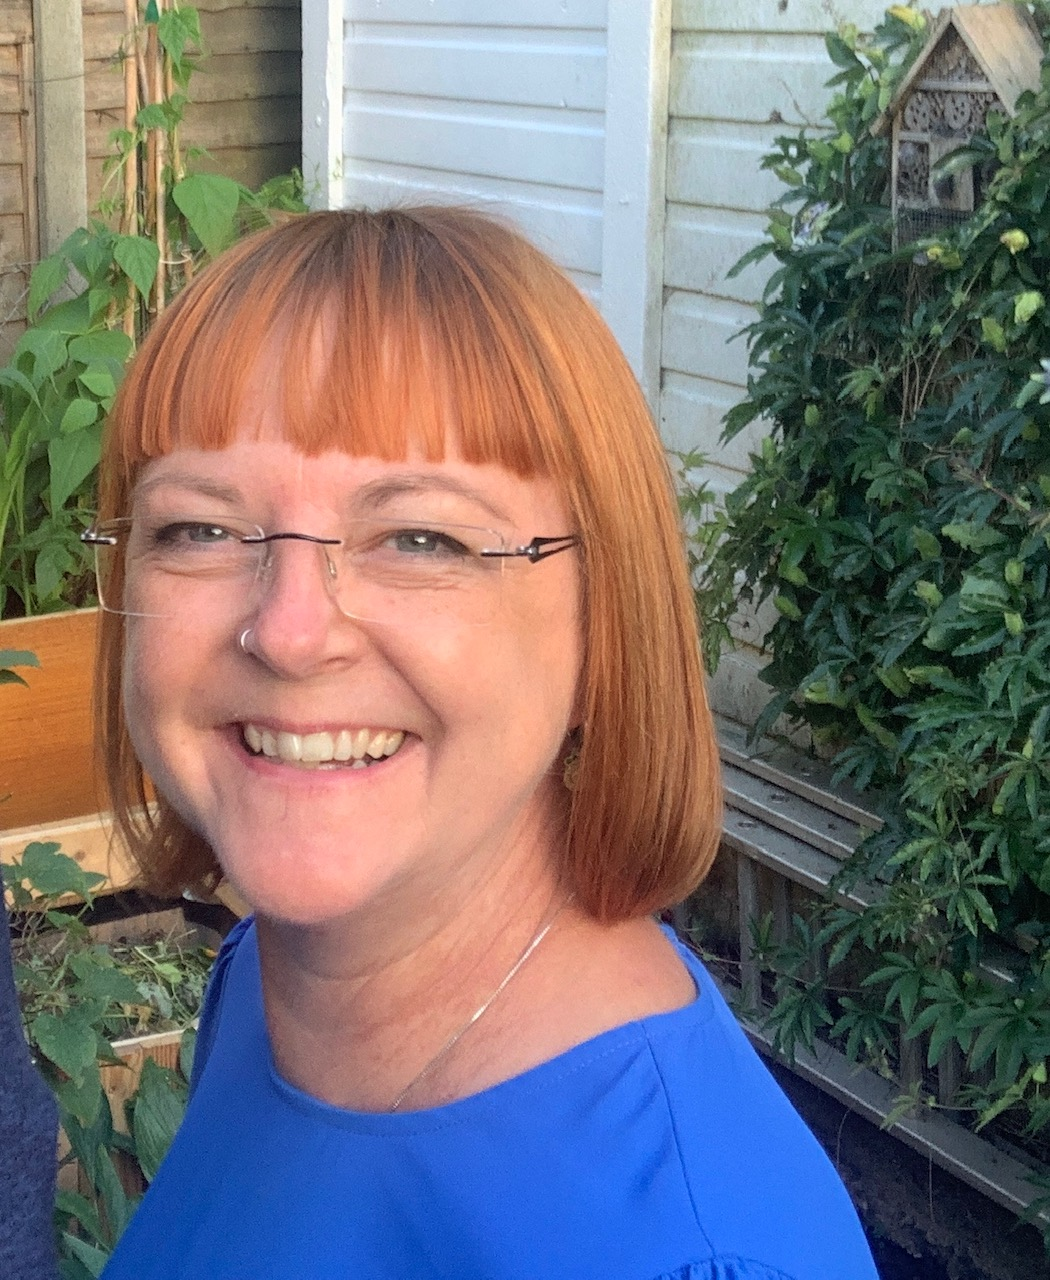 ICPCN and WHPCA welcome Gill Macdonald as their new Communications Manager